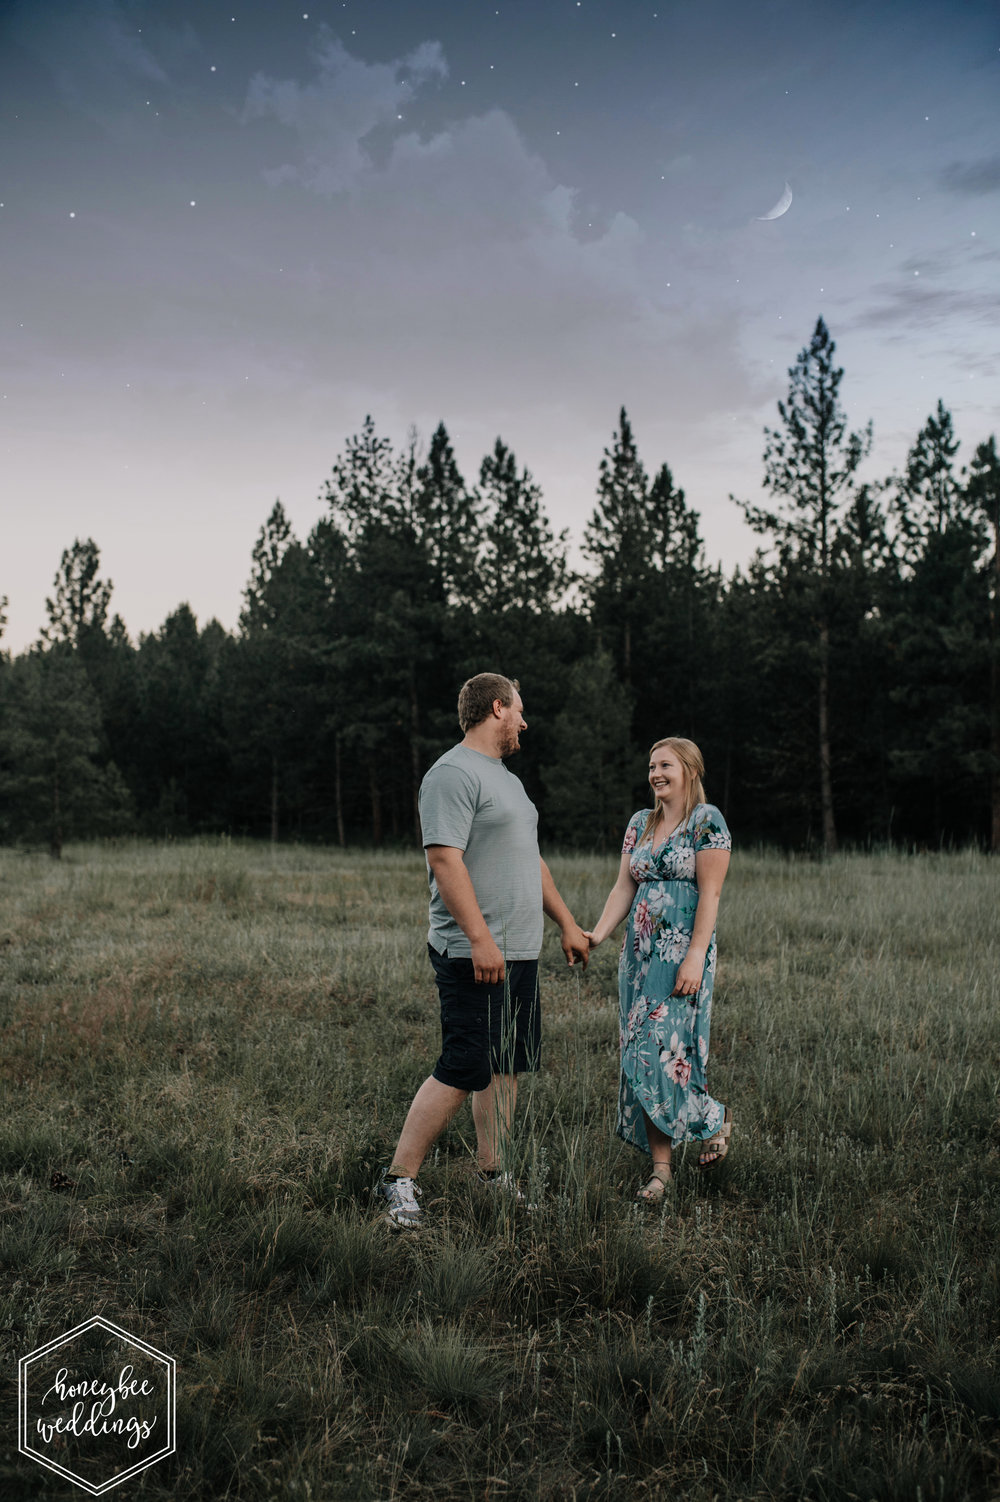 27 Montana Wedding Photographer_Missoula Engagement Session_Kenzie + Bobby 2018-8831.jpg